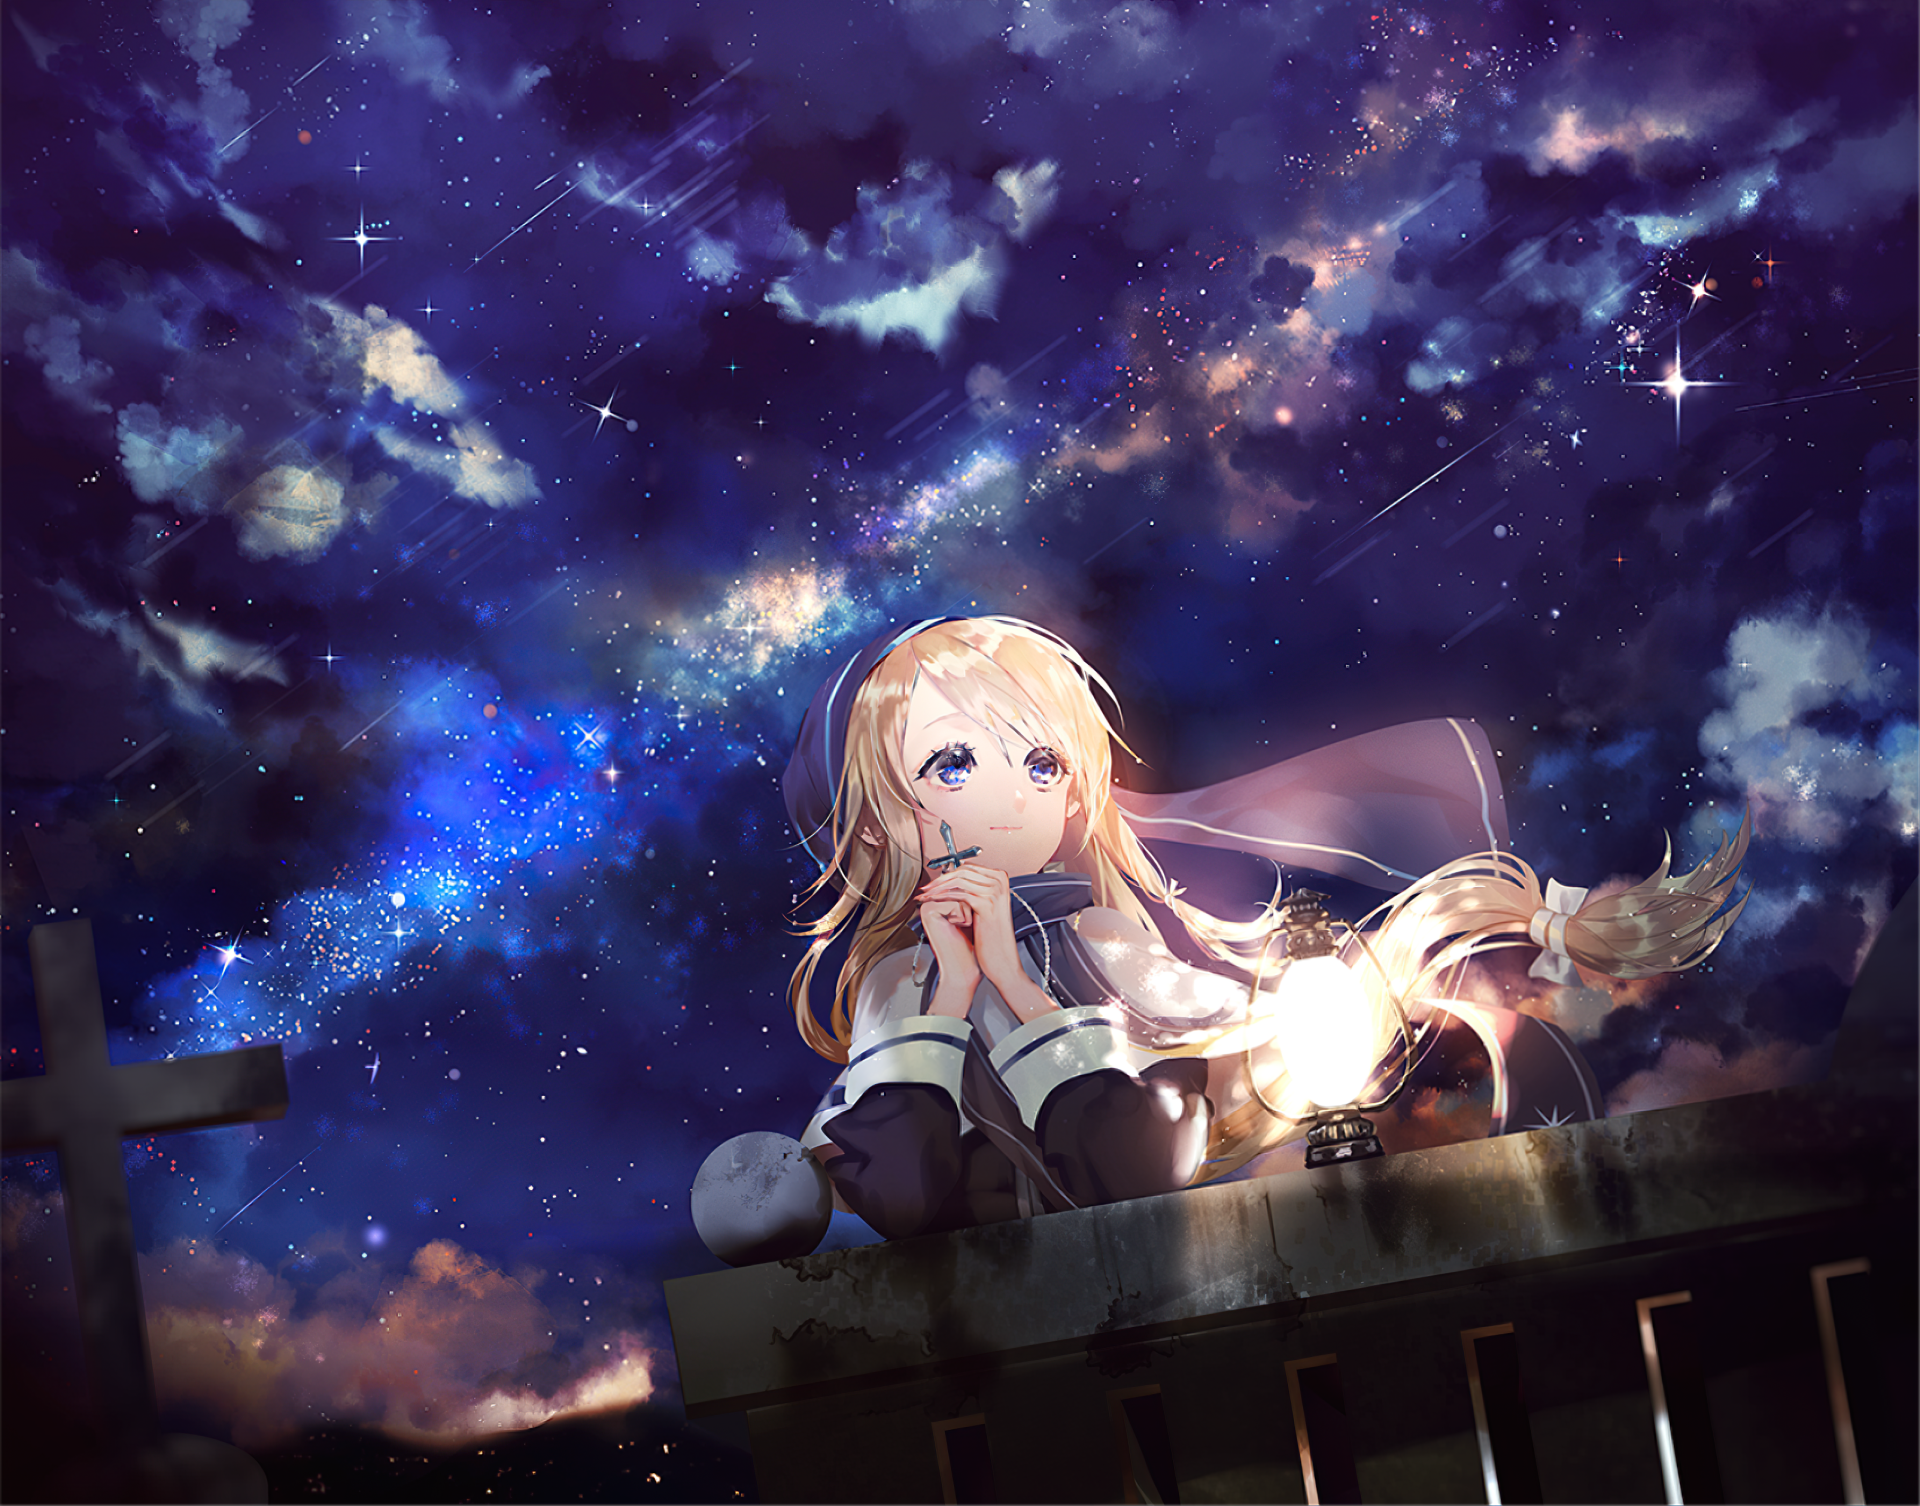 Wallpapers ID:917879